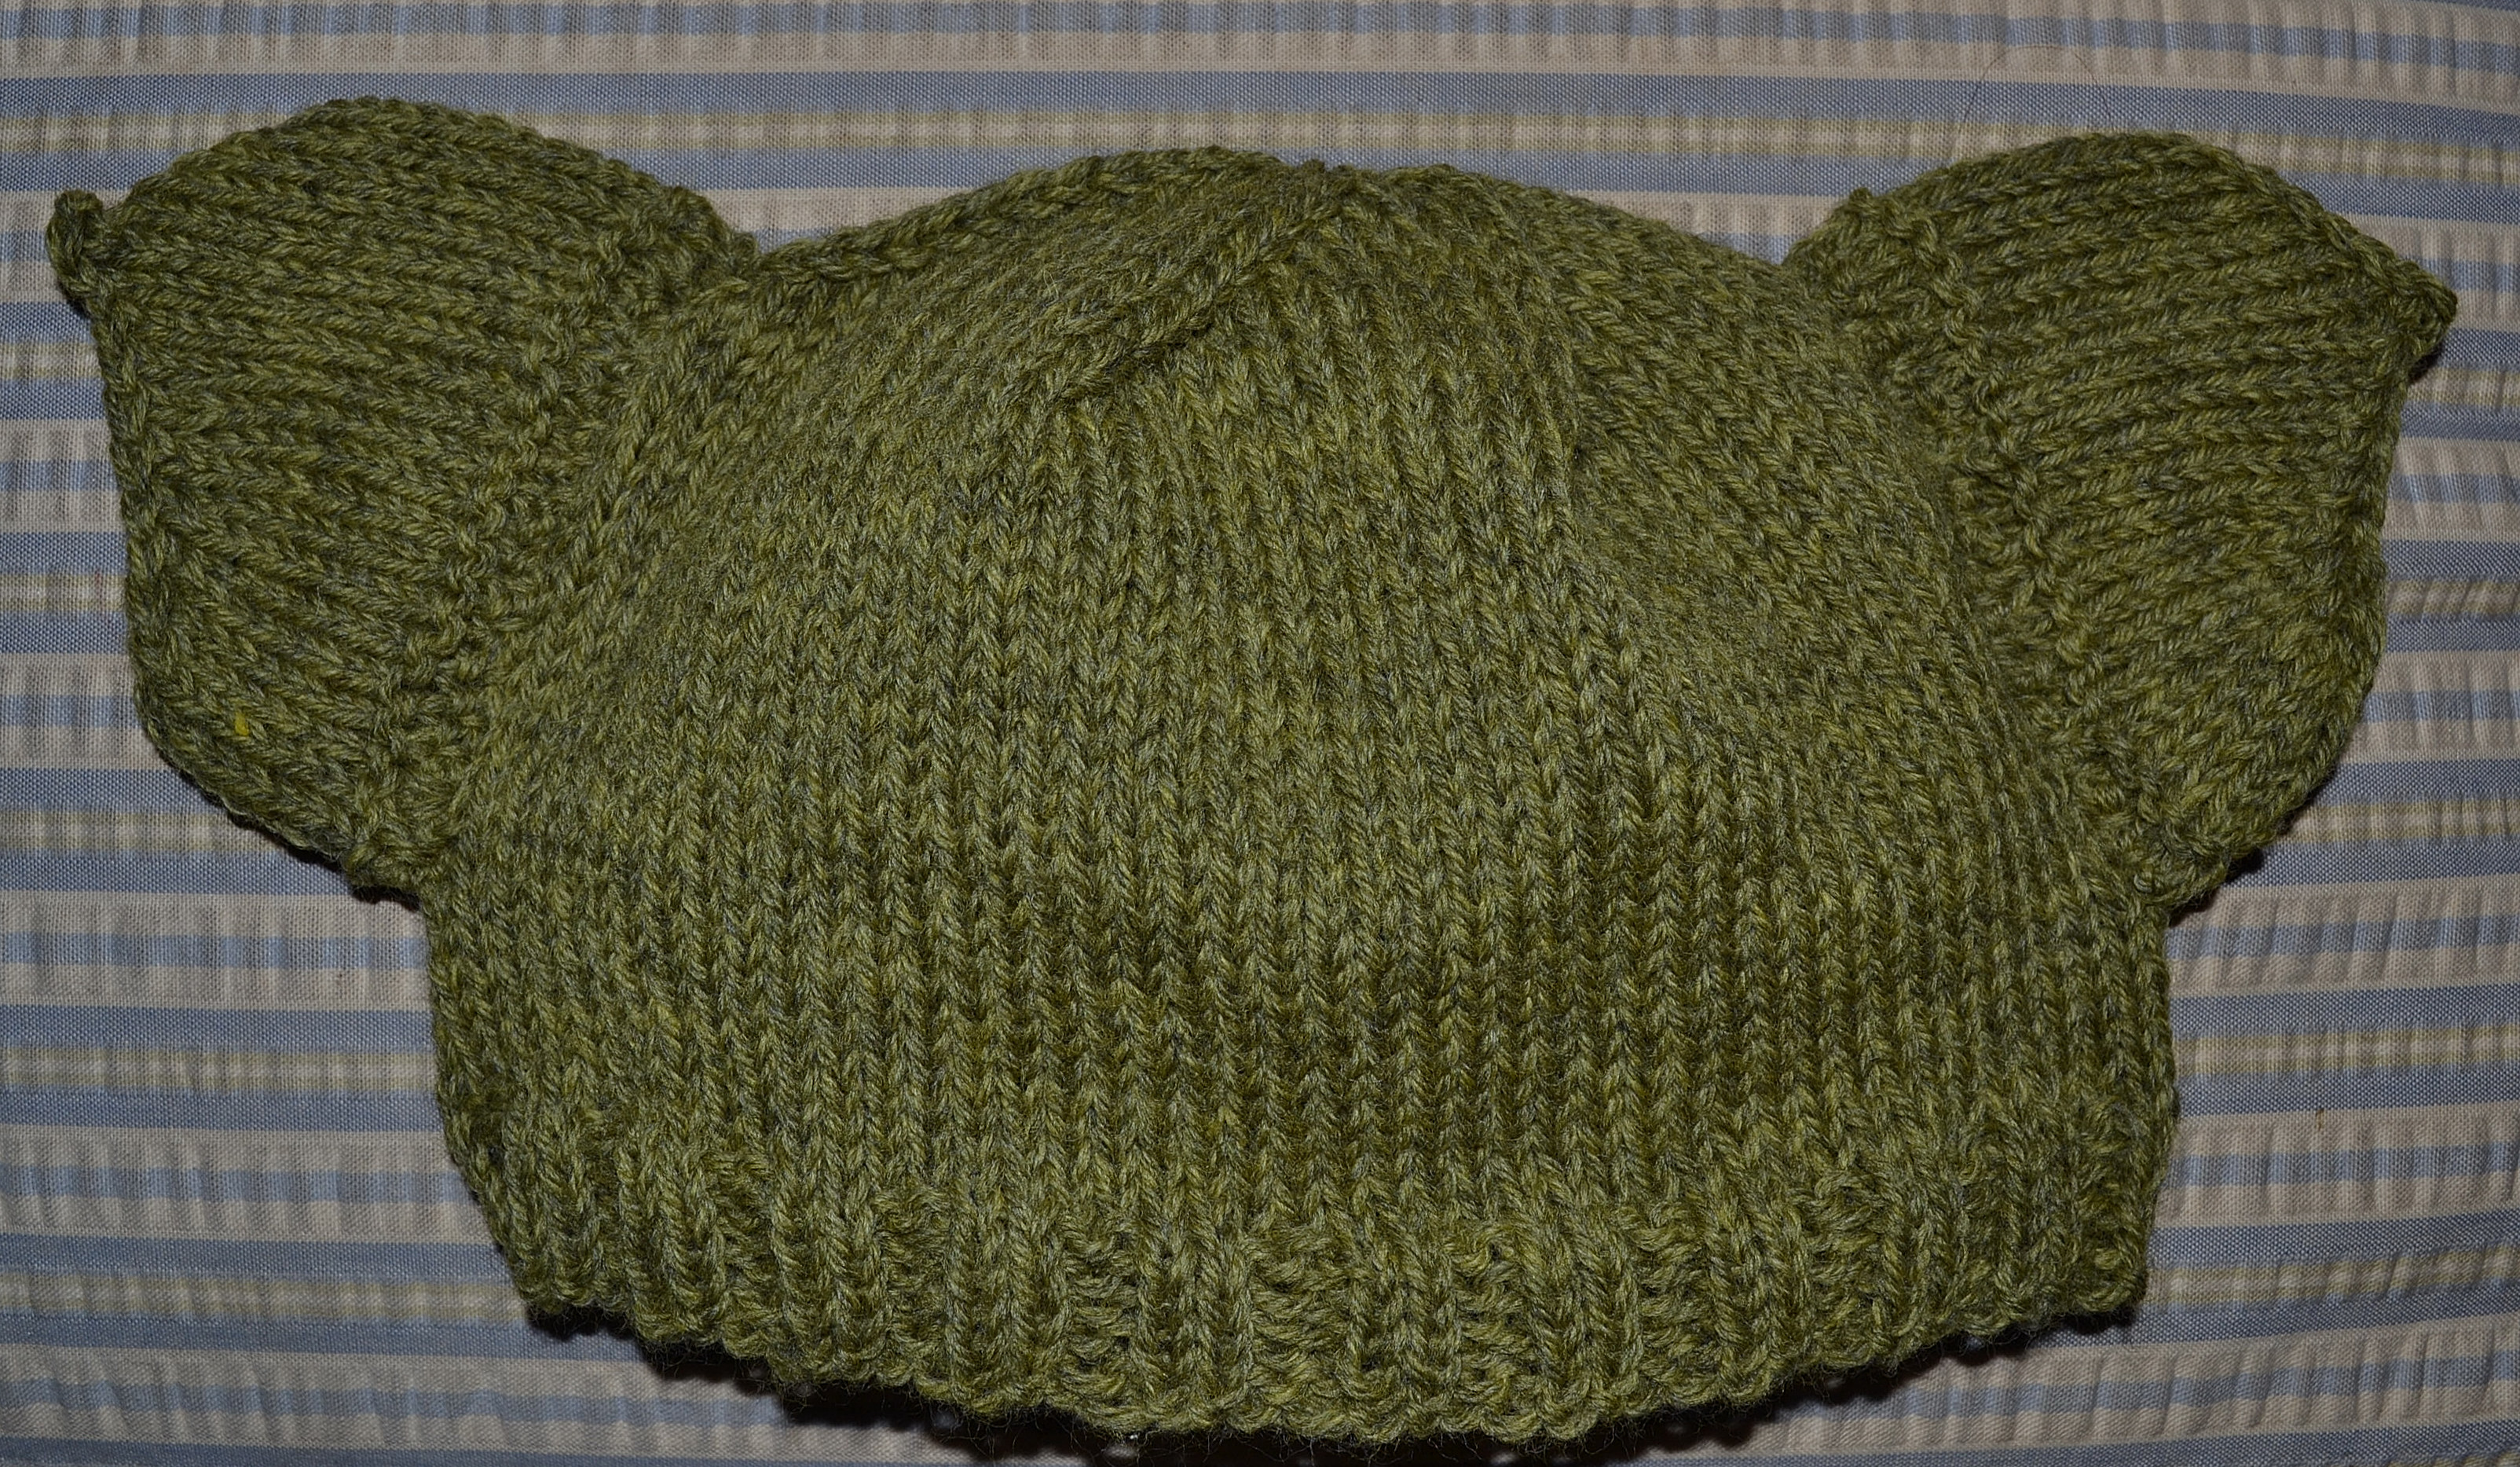 Star Wars Yoda It Is Adult Pattern Knitting For The Nicu